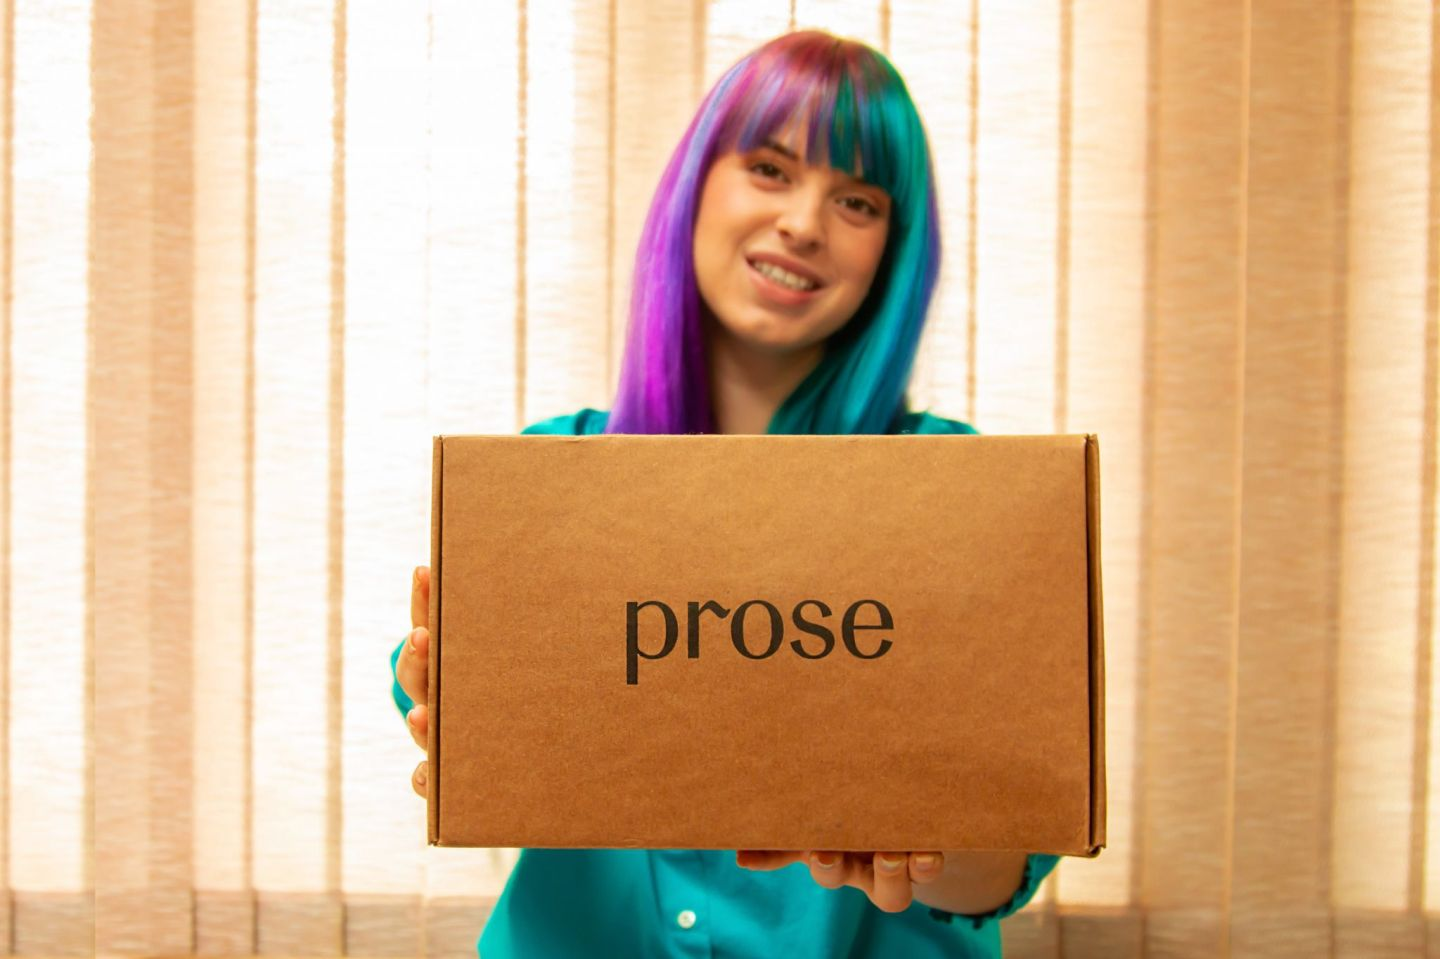 Prose Hair Care Unboxing